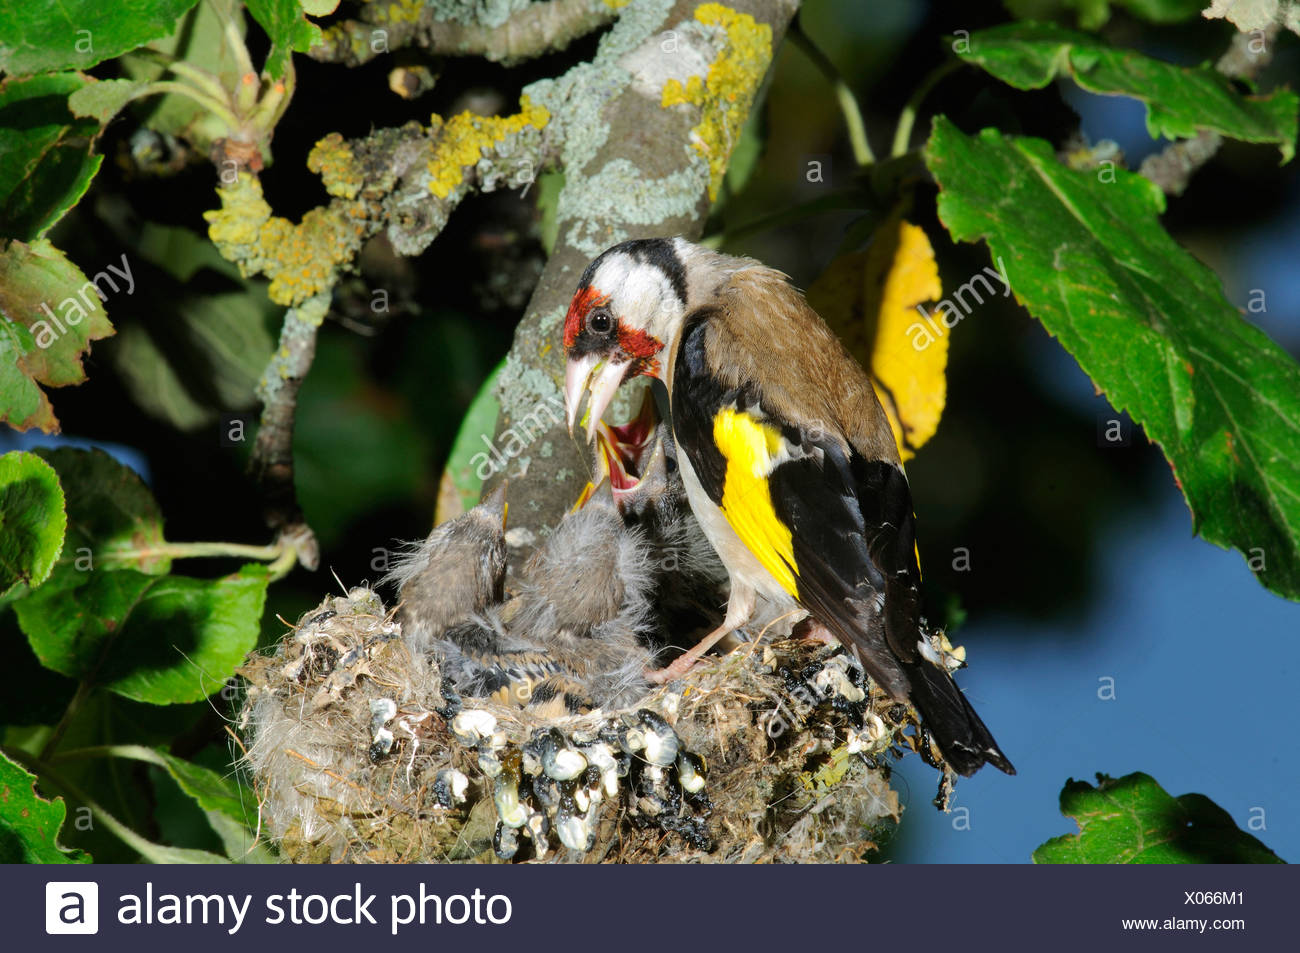 Goldfinch, European Goldfinch (Carduelis carduelis) Stock Photo